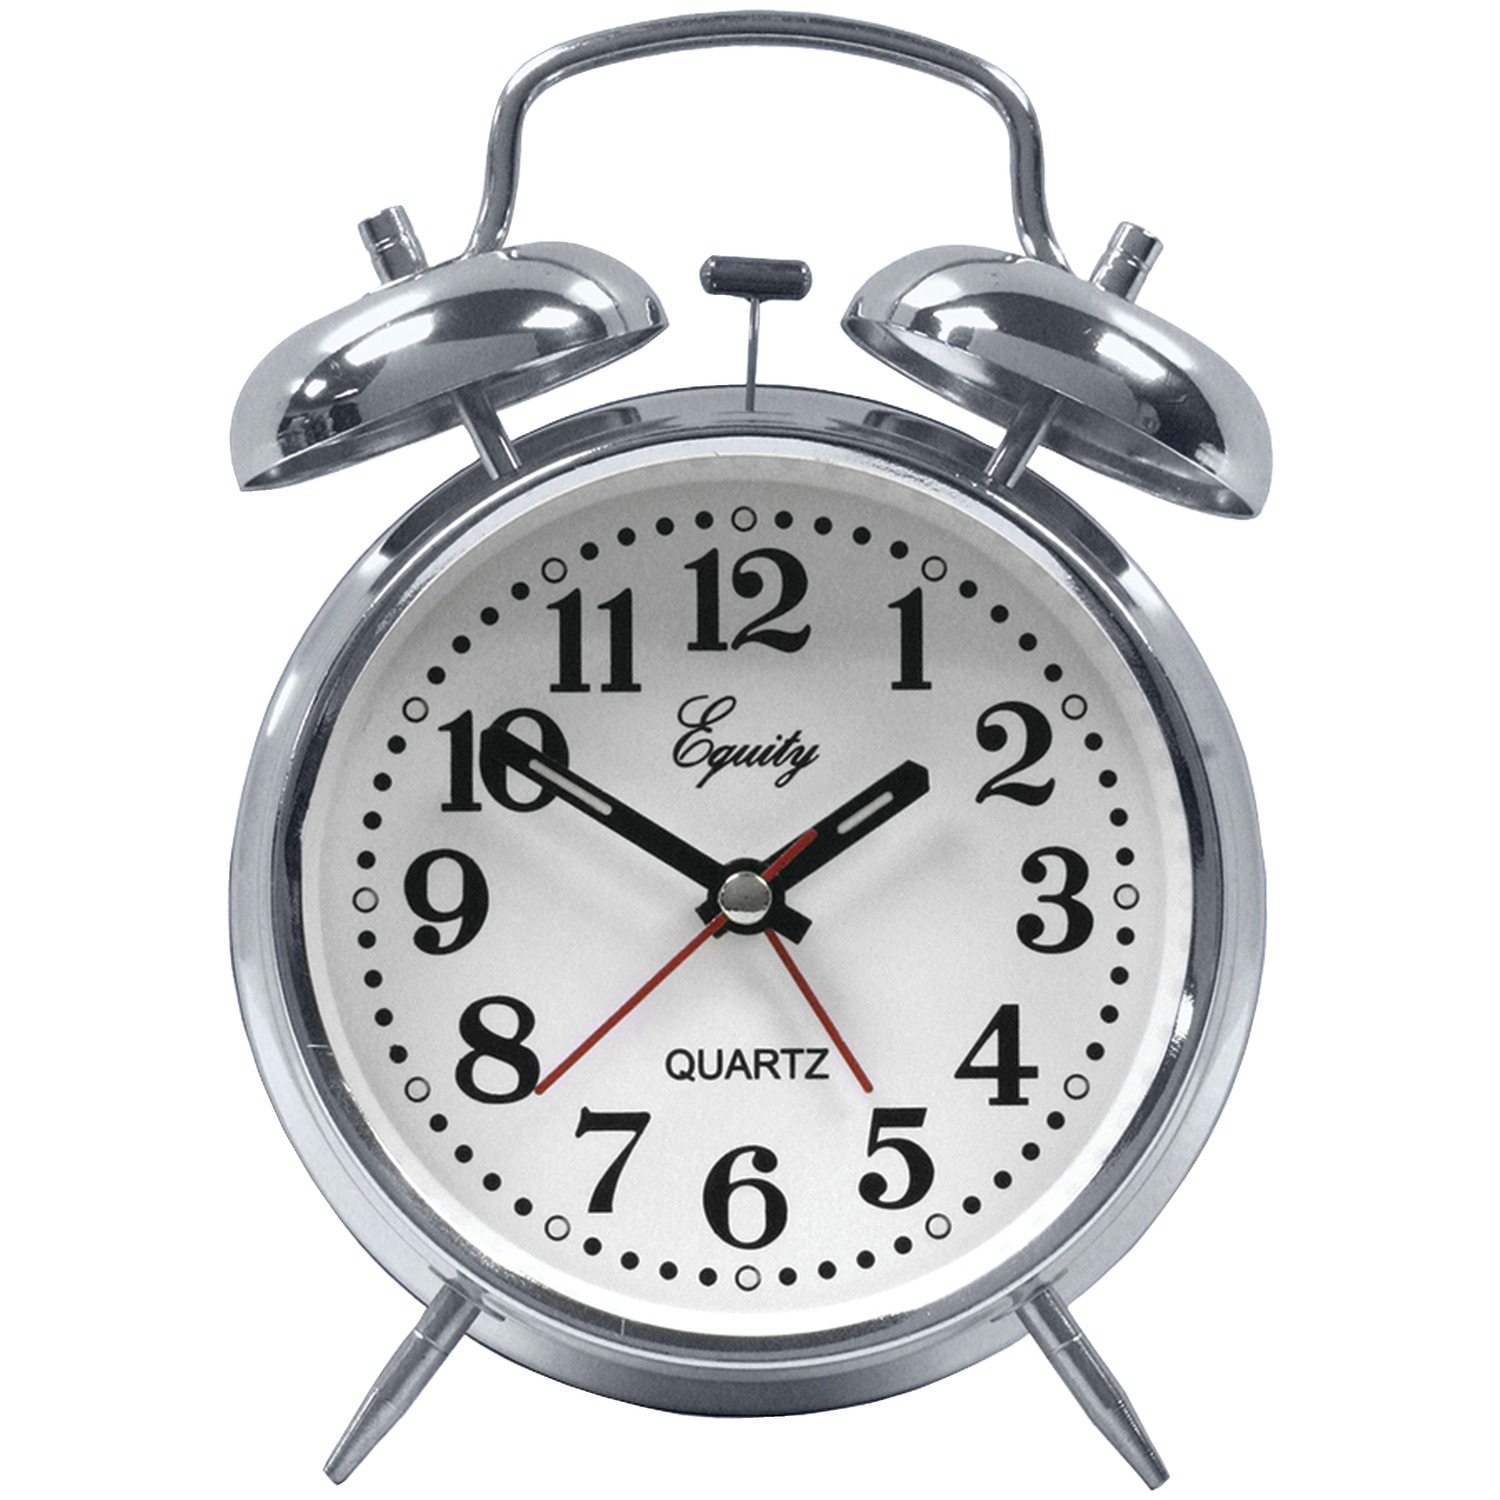 Equity By La Crosse 13014 Analog Quartz Alarm Clock